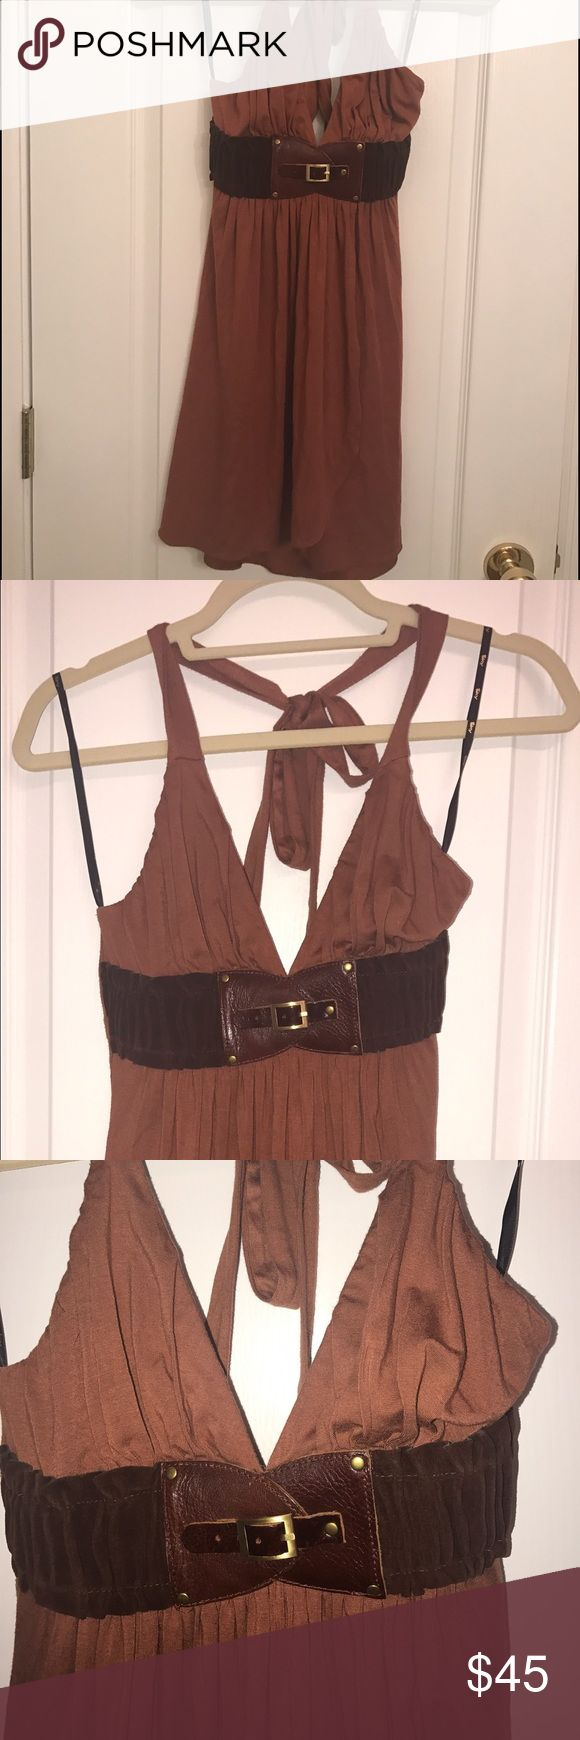 Sky brand brown mini dress S Sky brand brown mini dress with suede belt size S. Ordered the cute dress but never wore. All sales final. Sky Dresses Mini